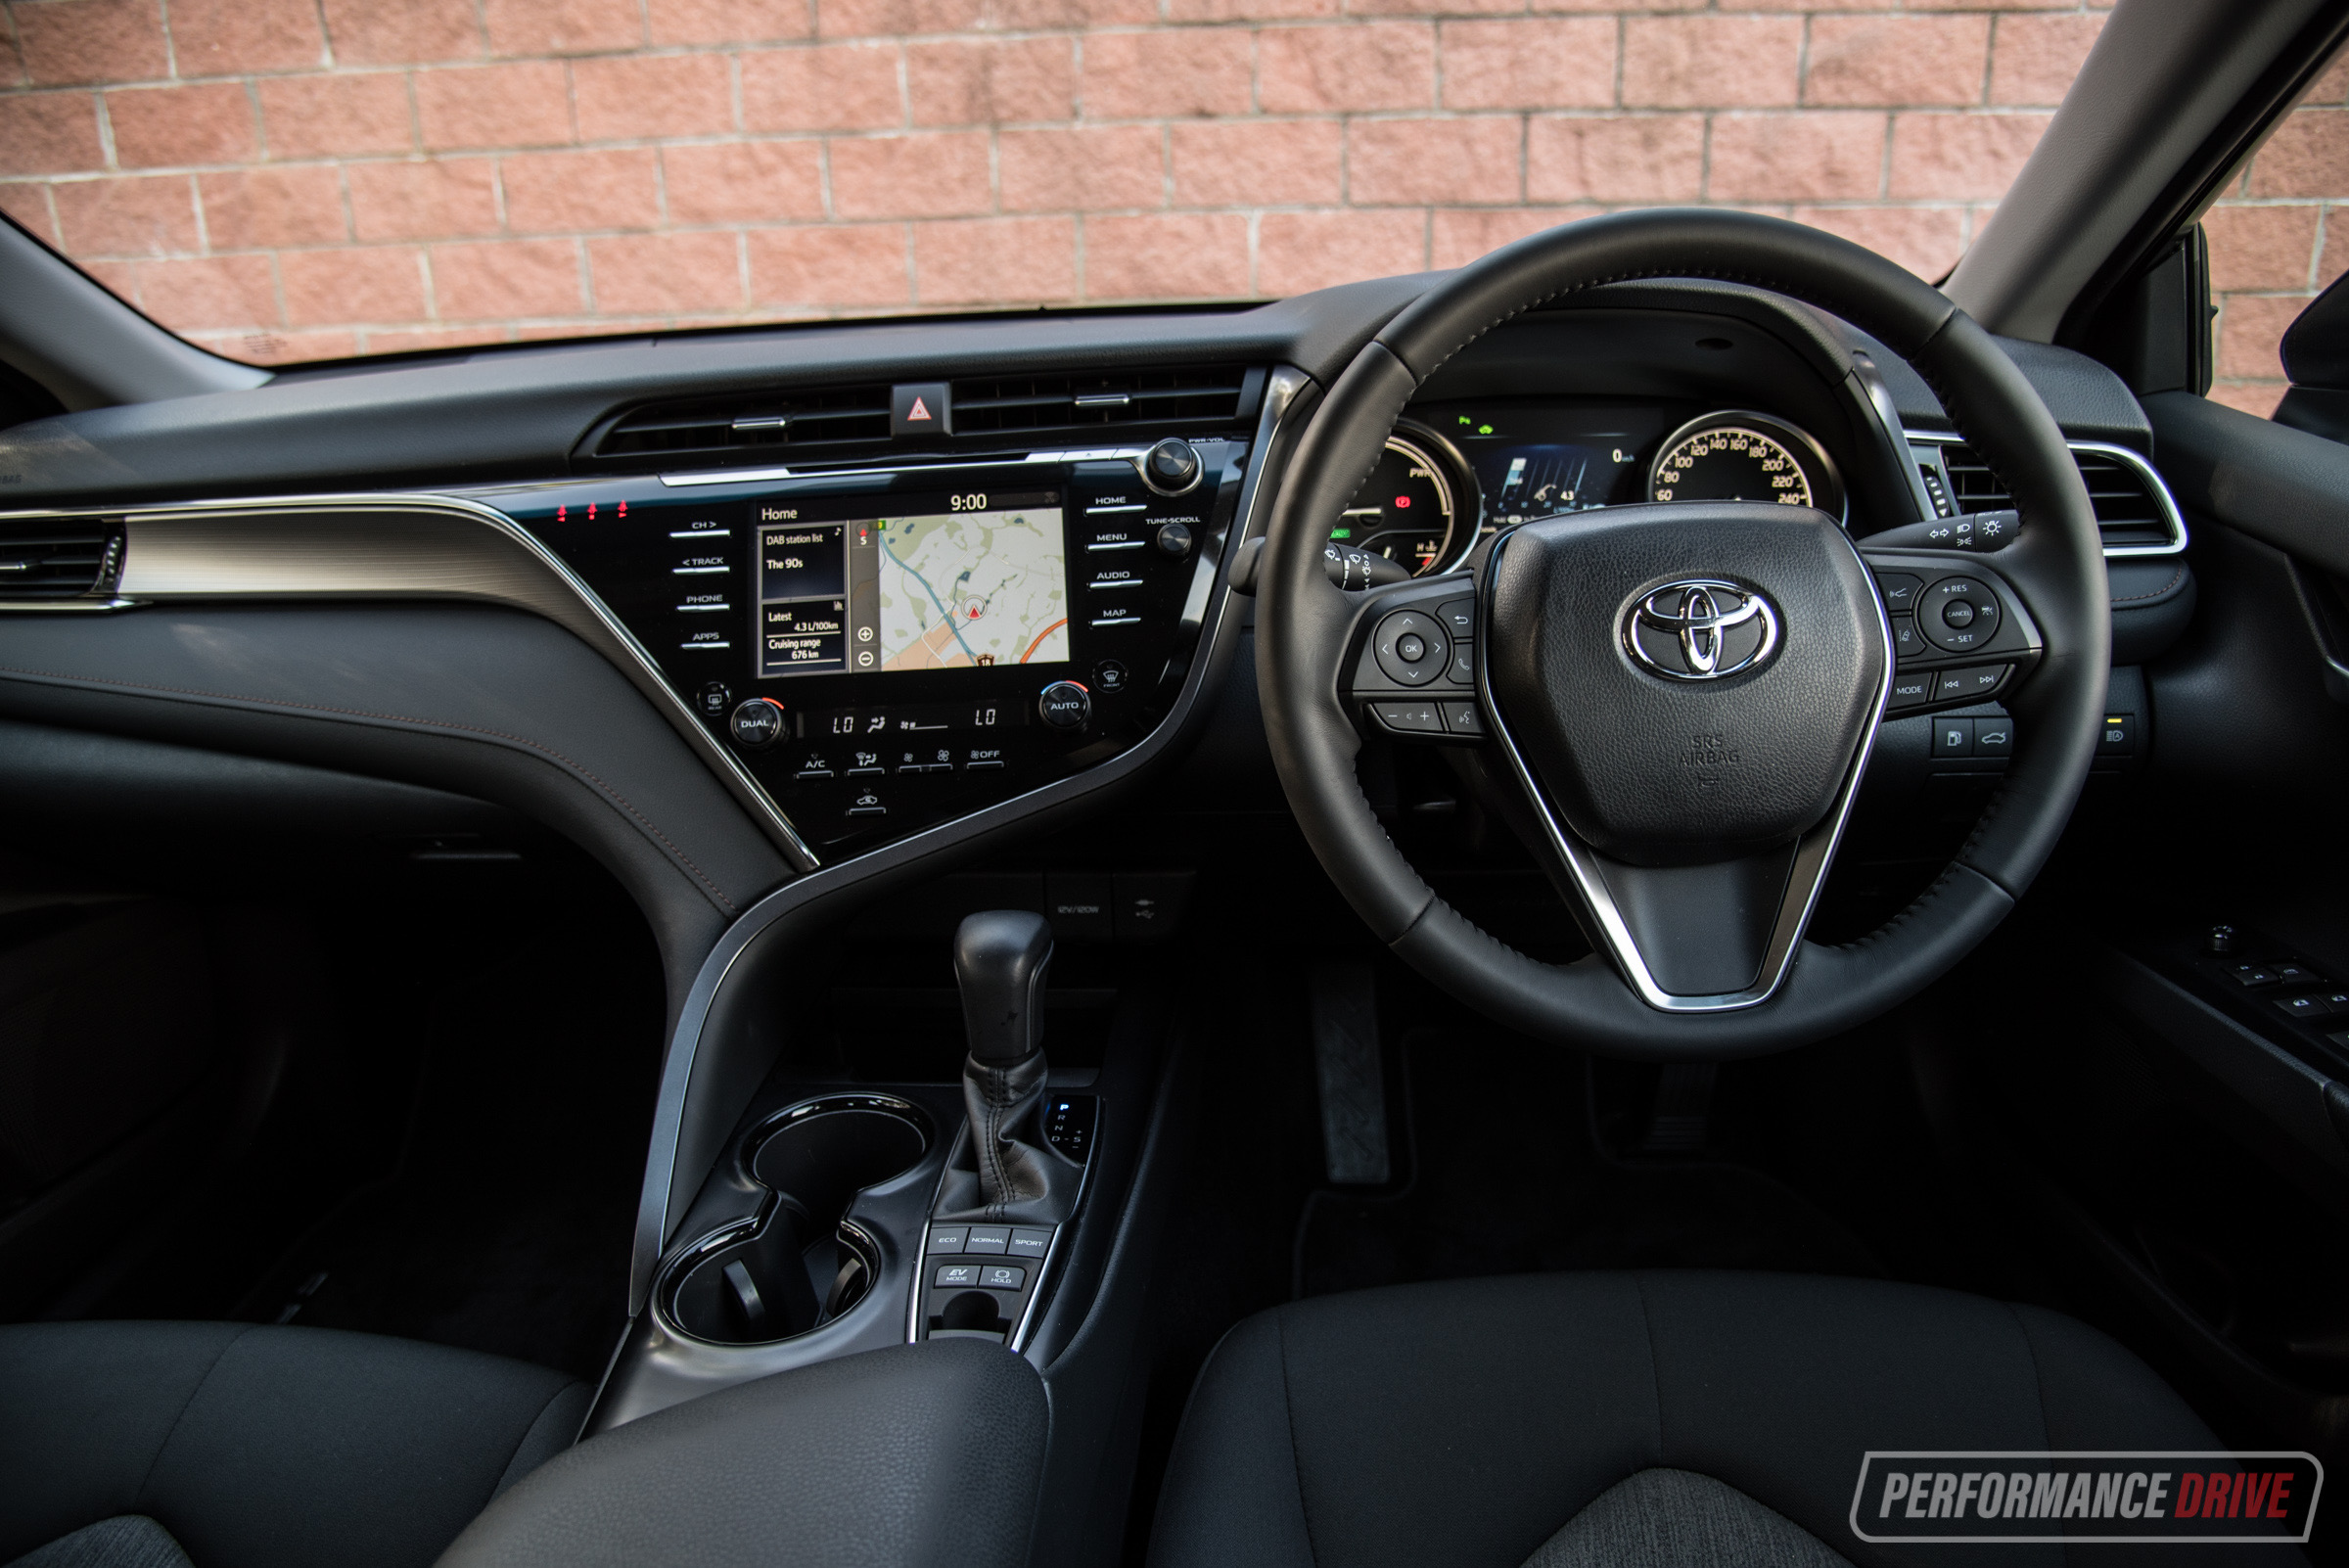 2018 toyota camry hybrid review video performancedrive. Black Bedroom Furniture Sets. Home Design Ideas